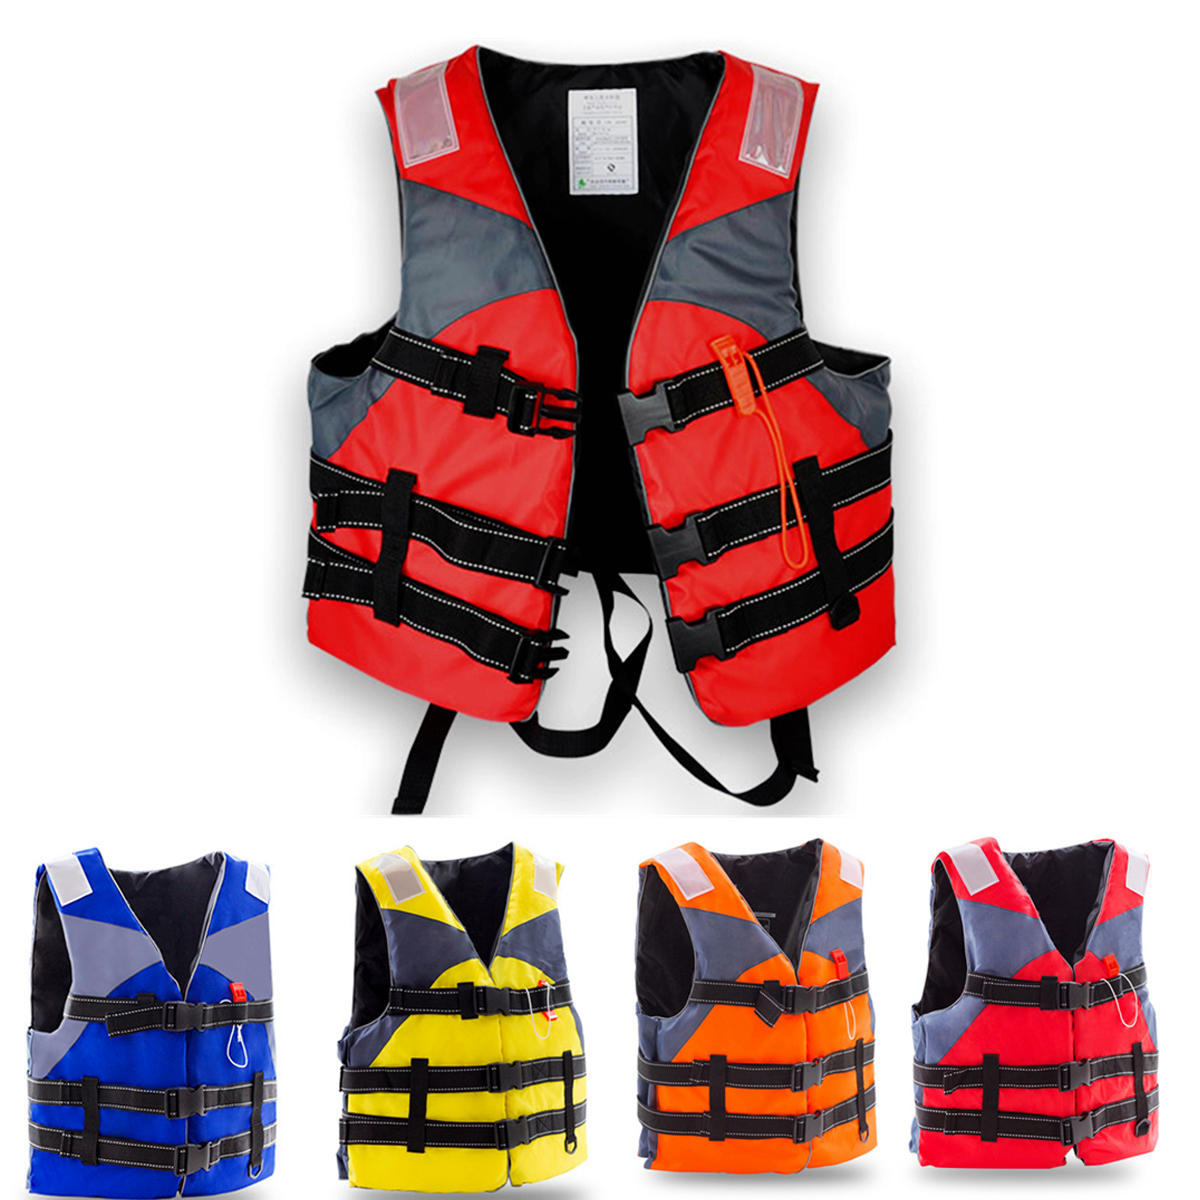 XXL Outdoor Survival Life Jacket Fully Enclose Foam Adult Boating Life Jacket Vest with Whistle